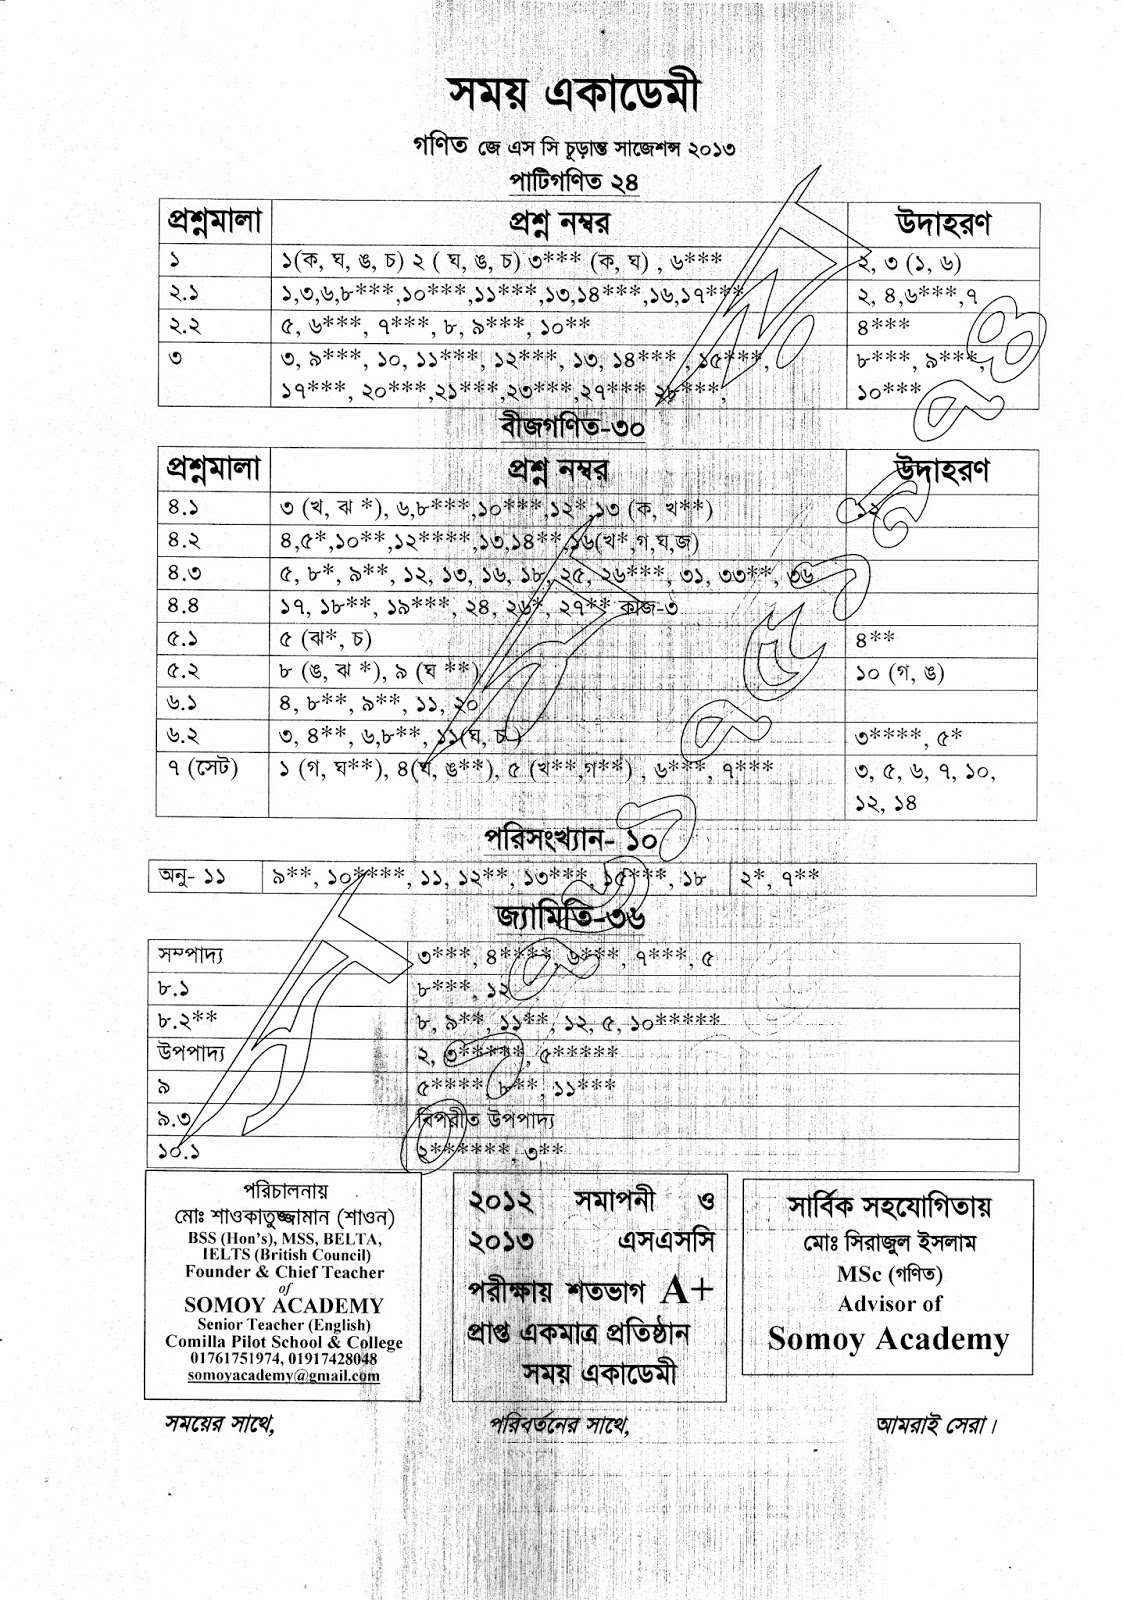 সময় একাডেমী (Somoy Academy): JSC Math Suggestion Last Update